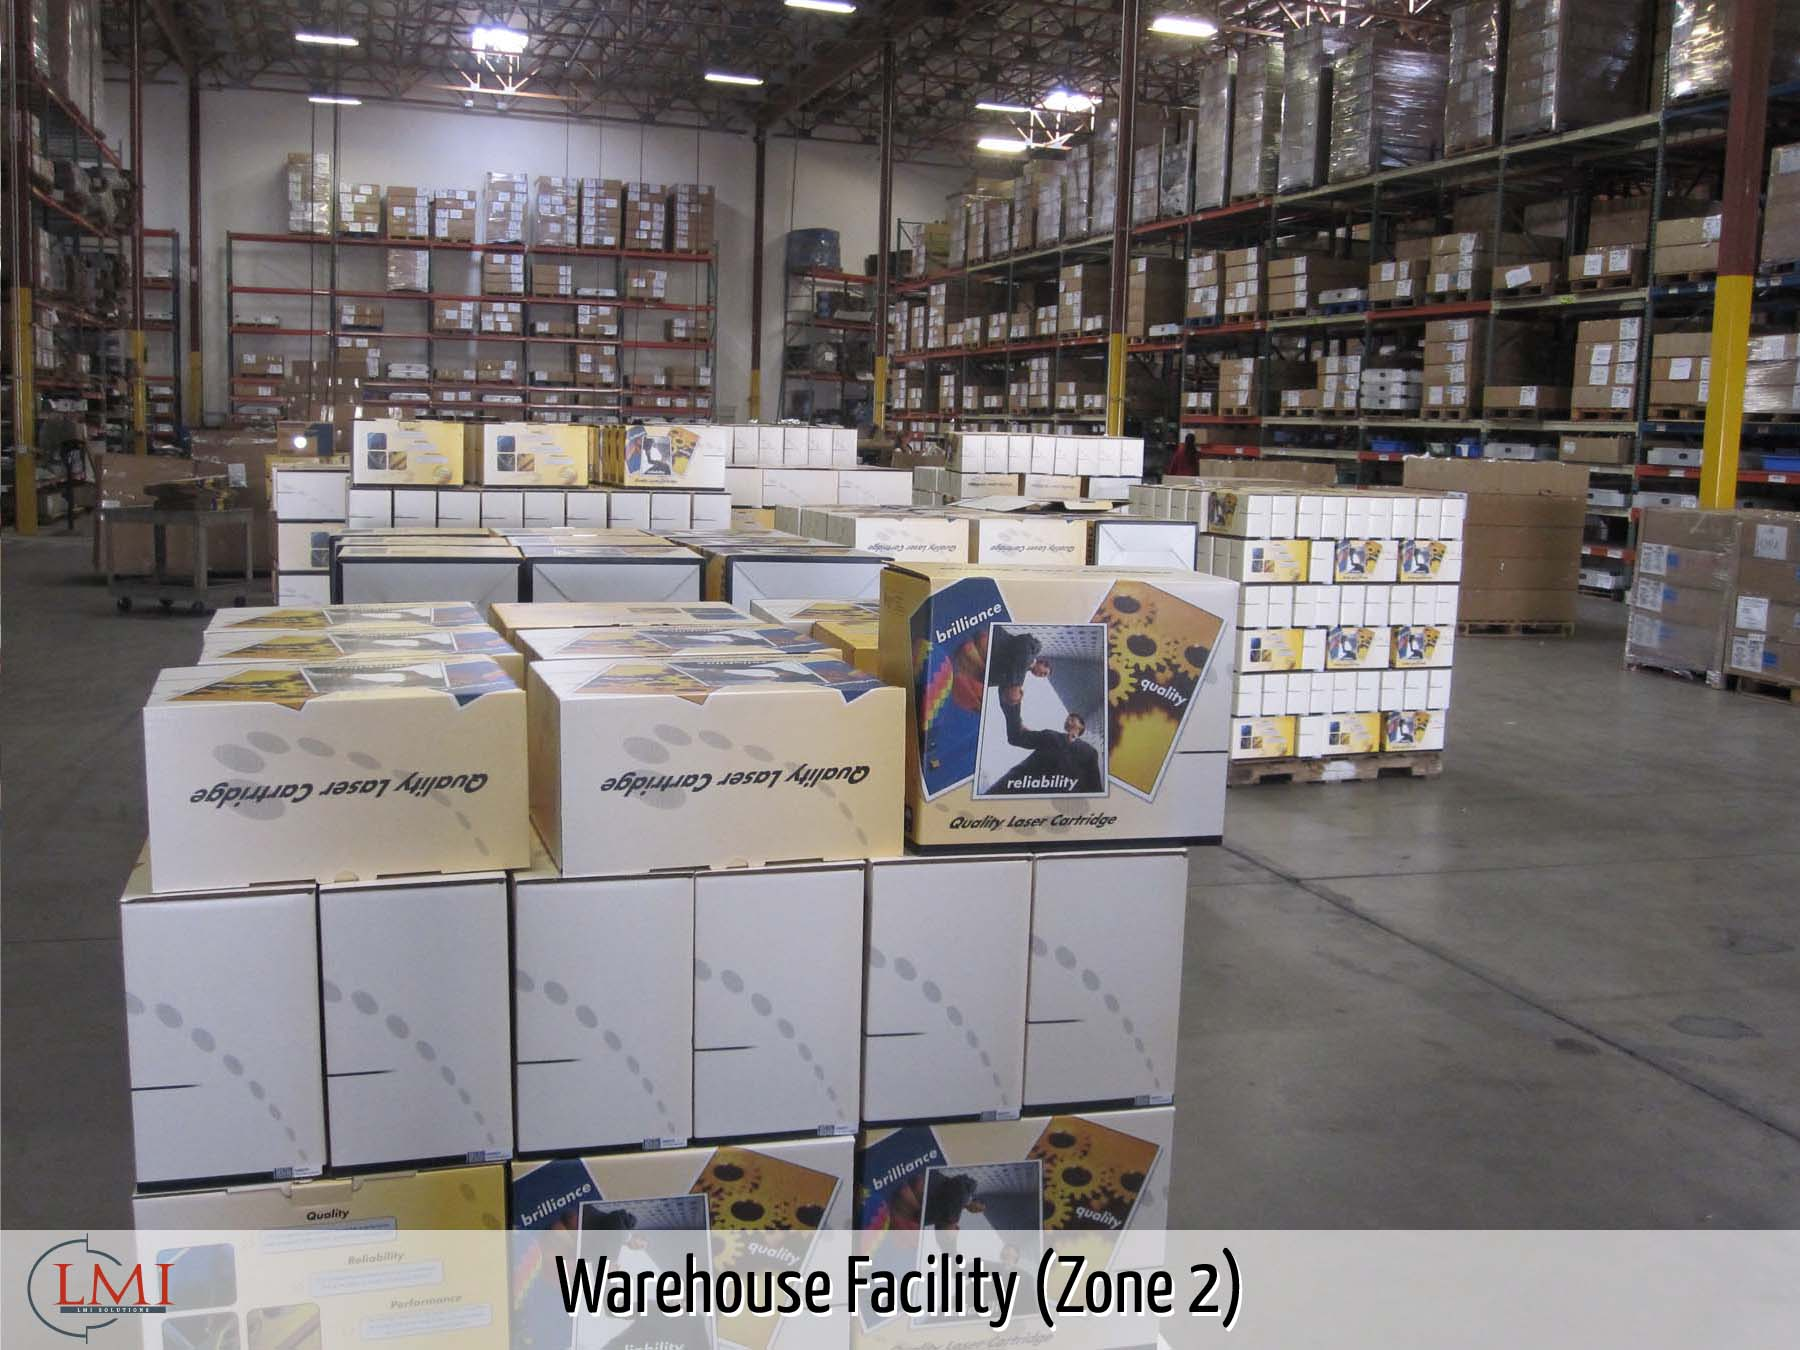 Warehouse Facility (Zone 2)